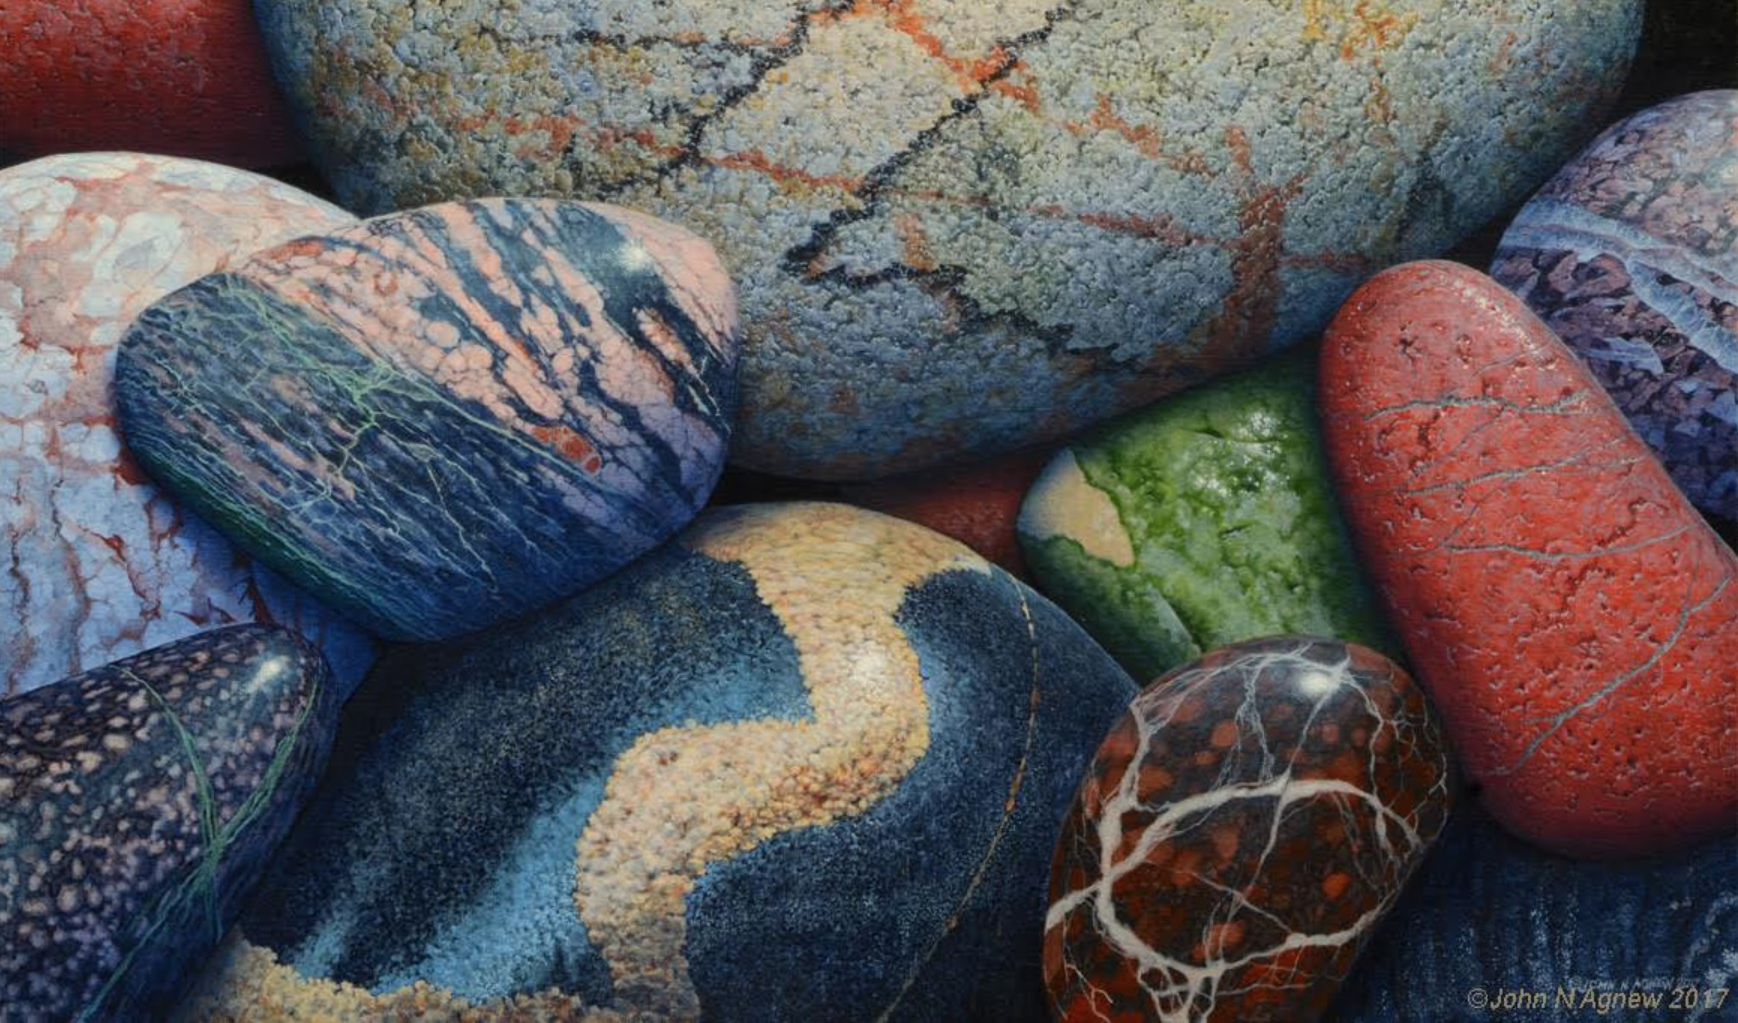 JOHN H. AGNEW, BARB'S NEW STONES #2  ACRYLIC ON CANVAS, 18 IN. X 30 IN.